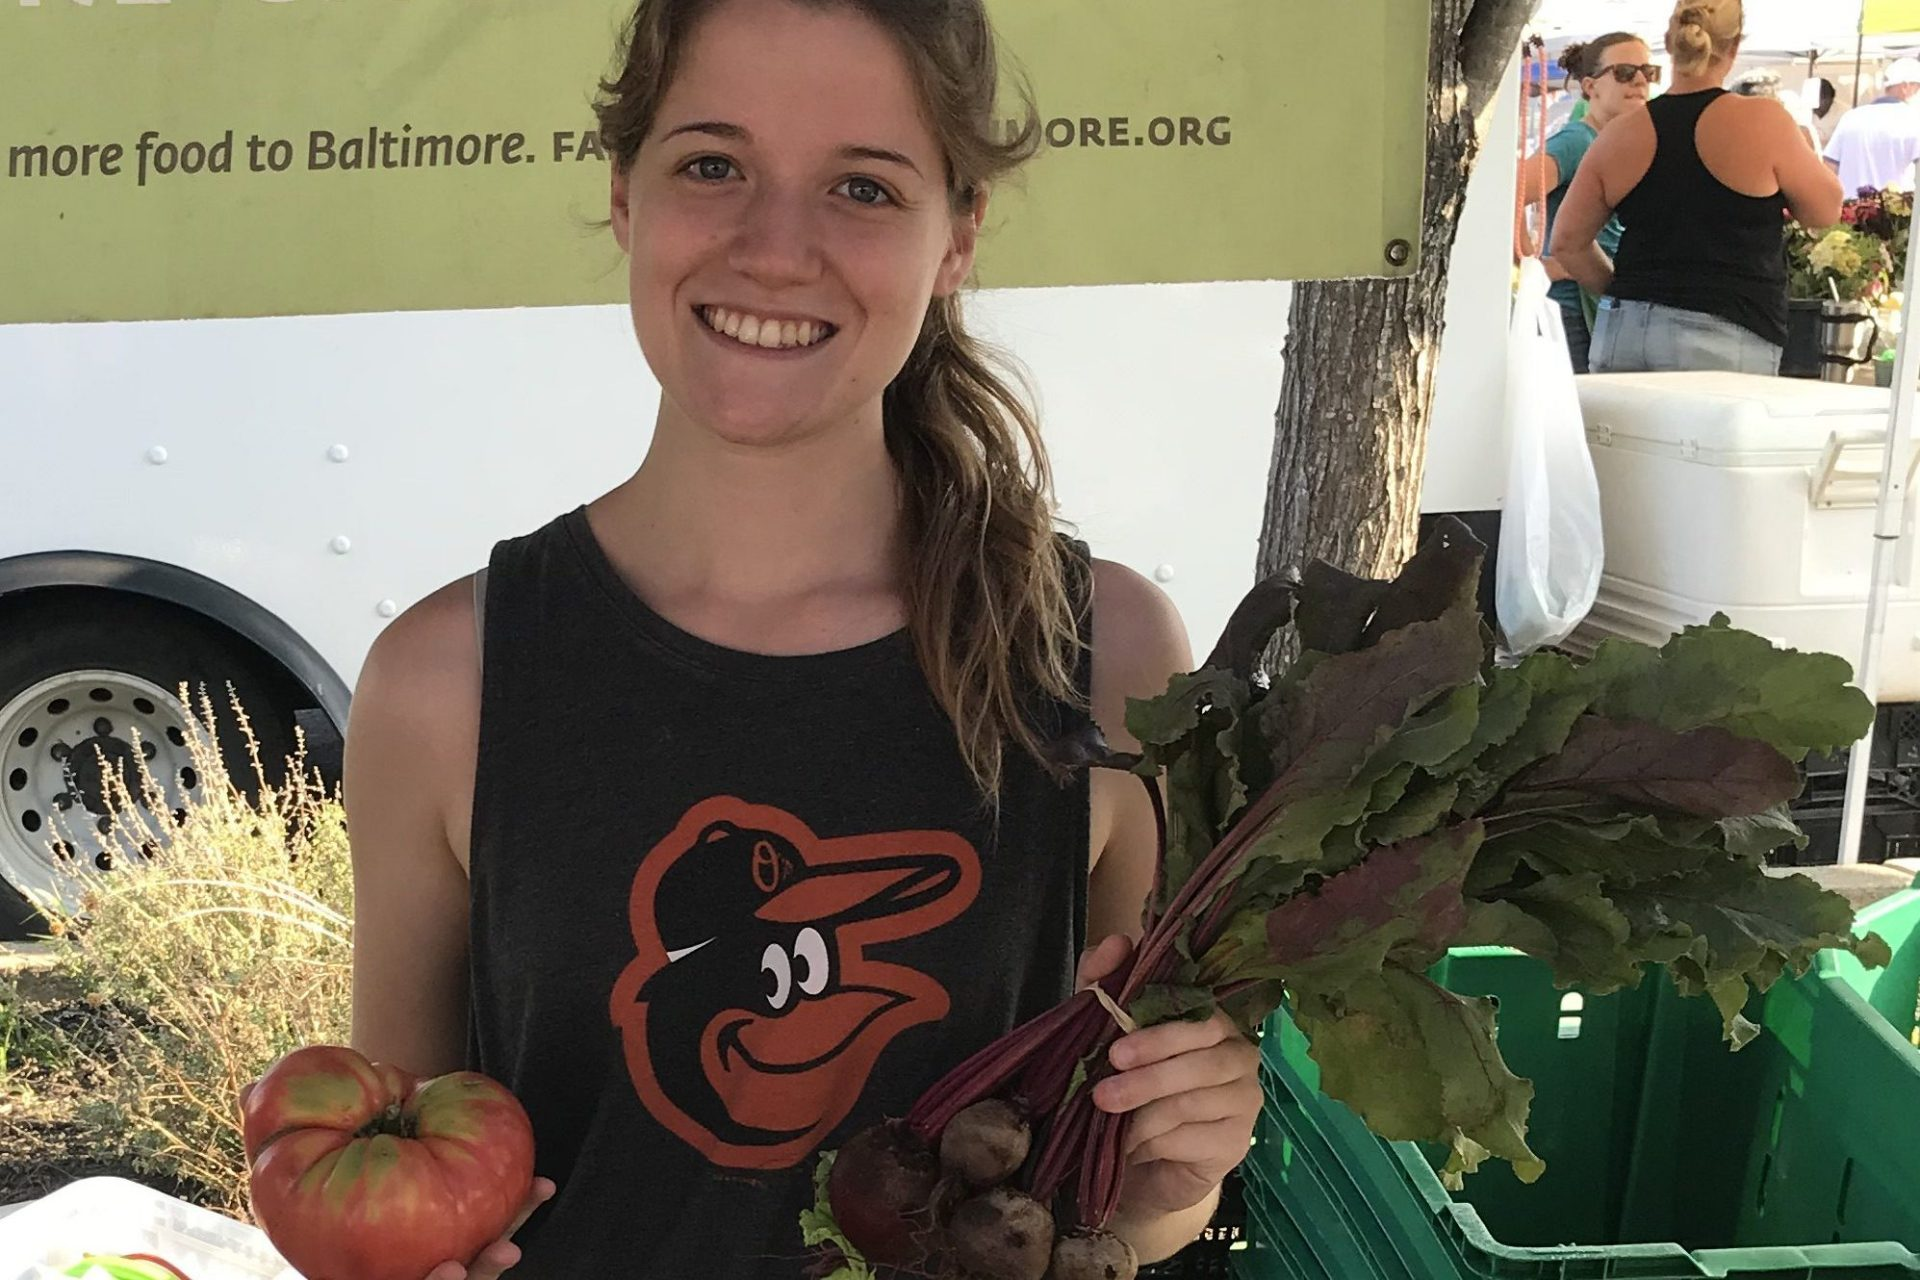 Lizzie with some beets and a tomato